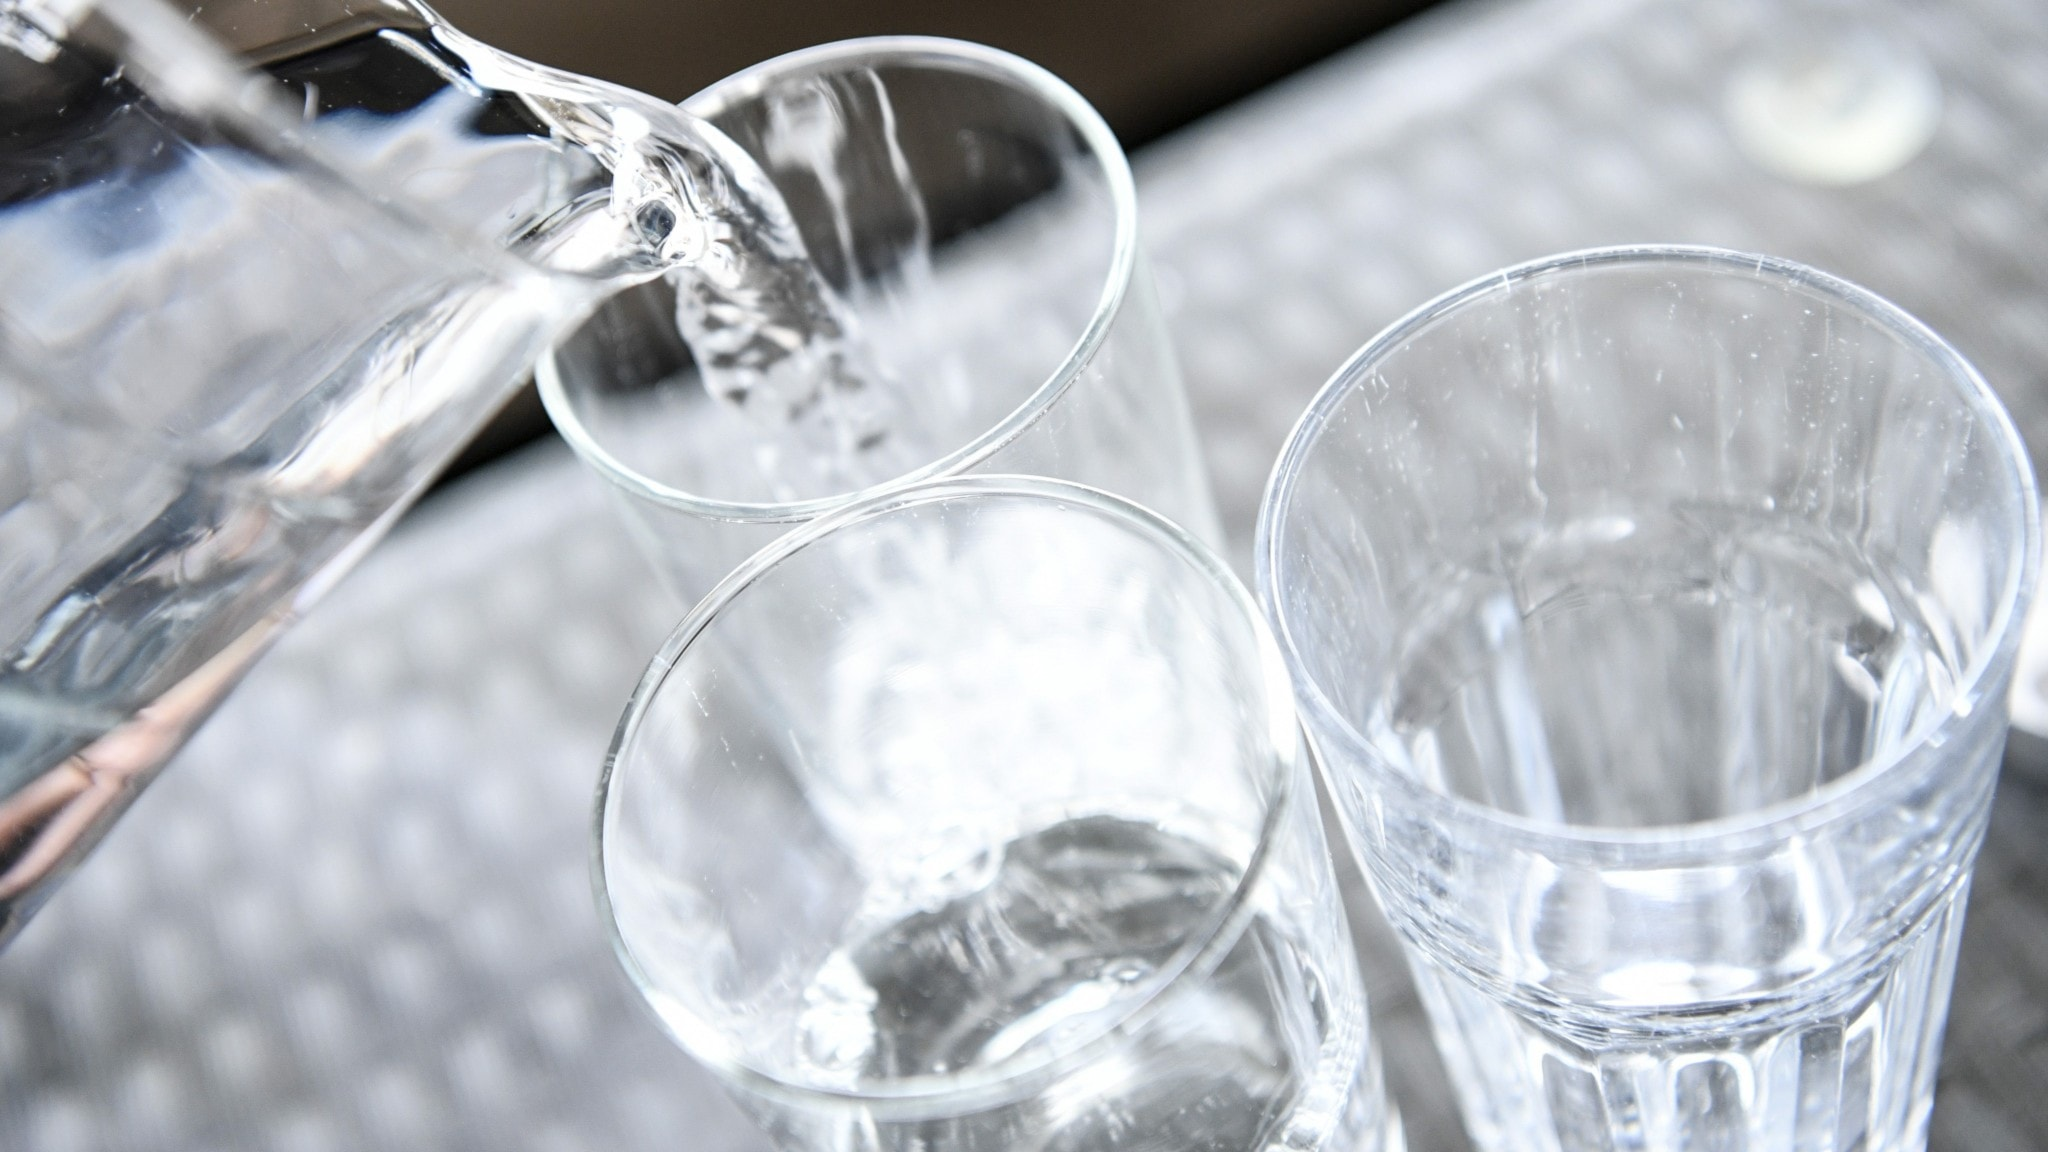 Water being poured into glasses.